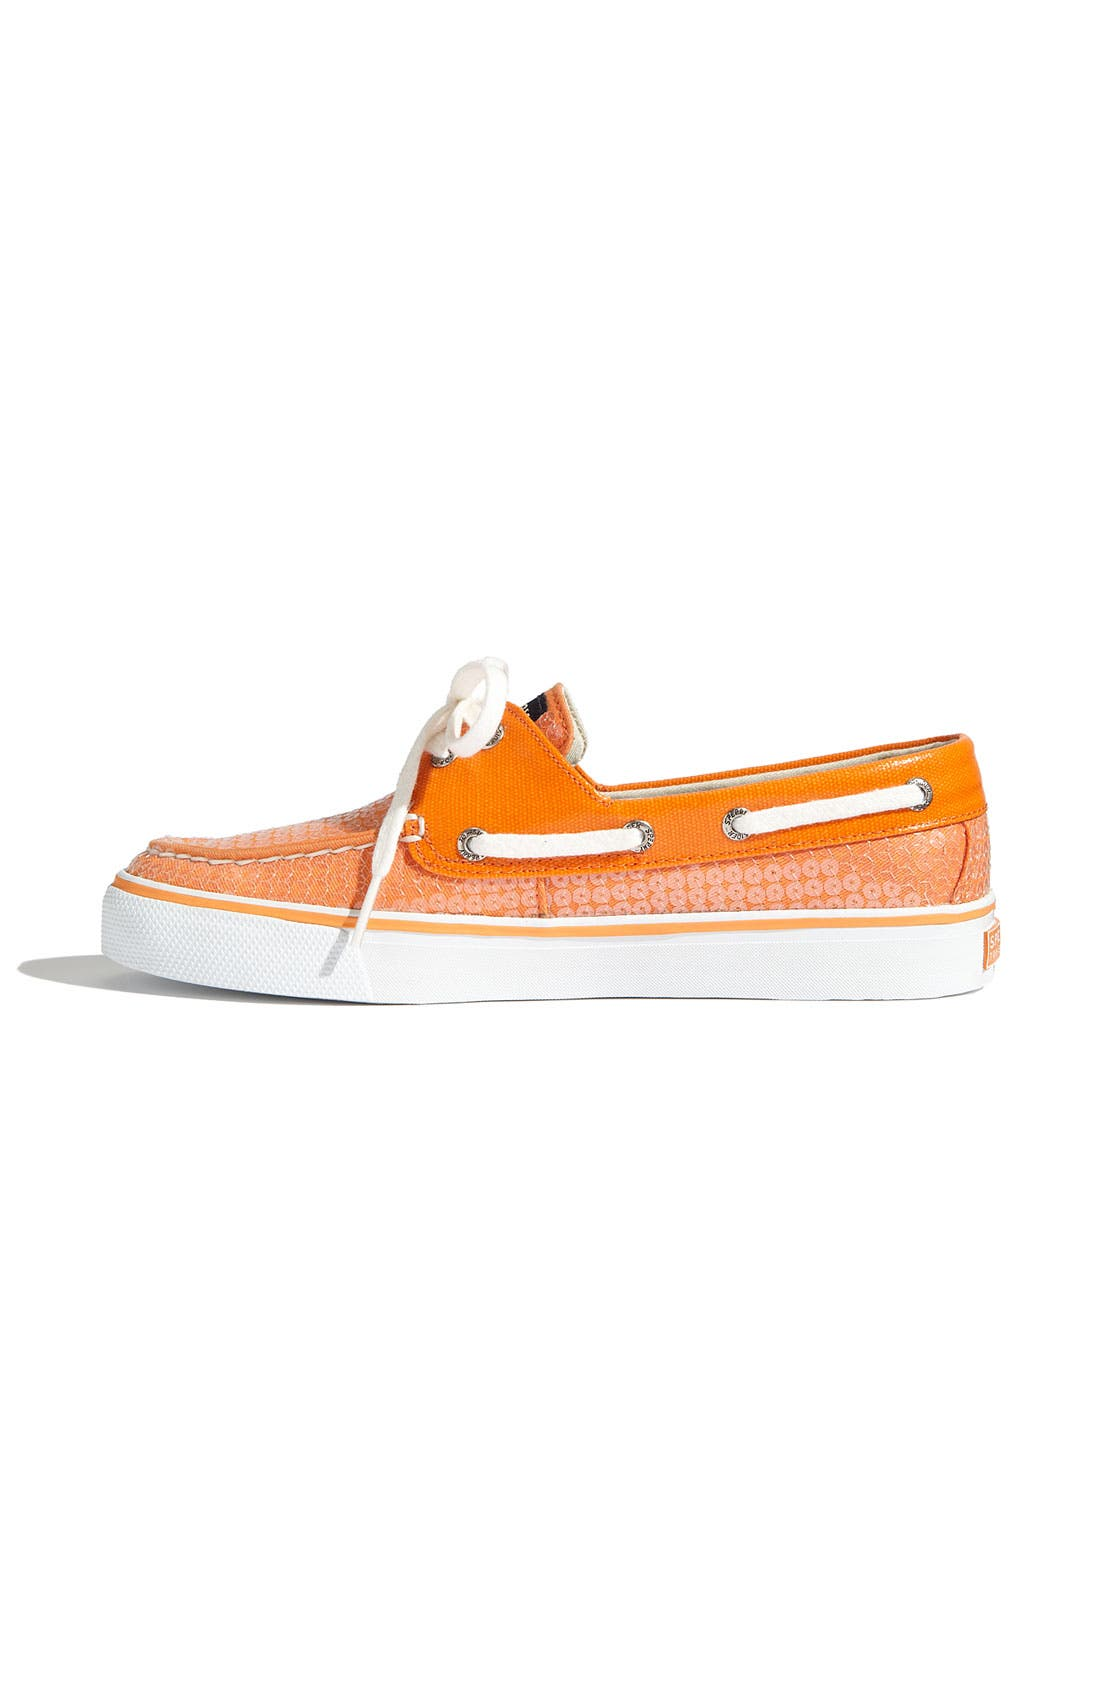 Top-Sider<sup>®</sup> 'Bahama' Sequined Boat Shoe,                             Alternate thumbnail 90, color,